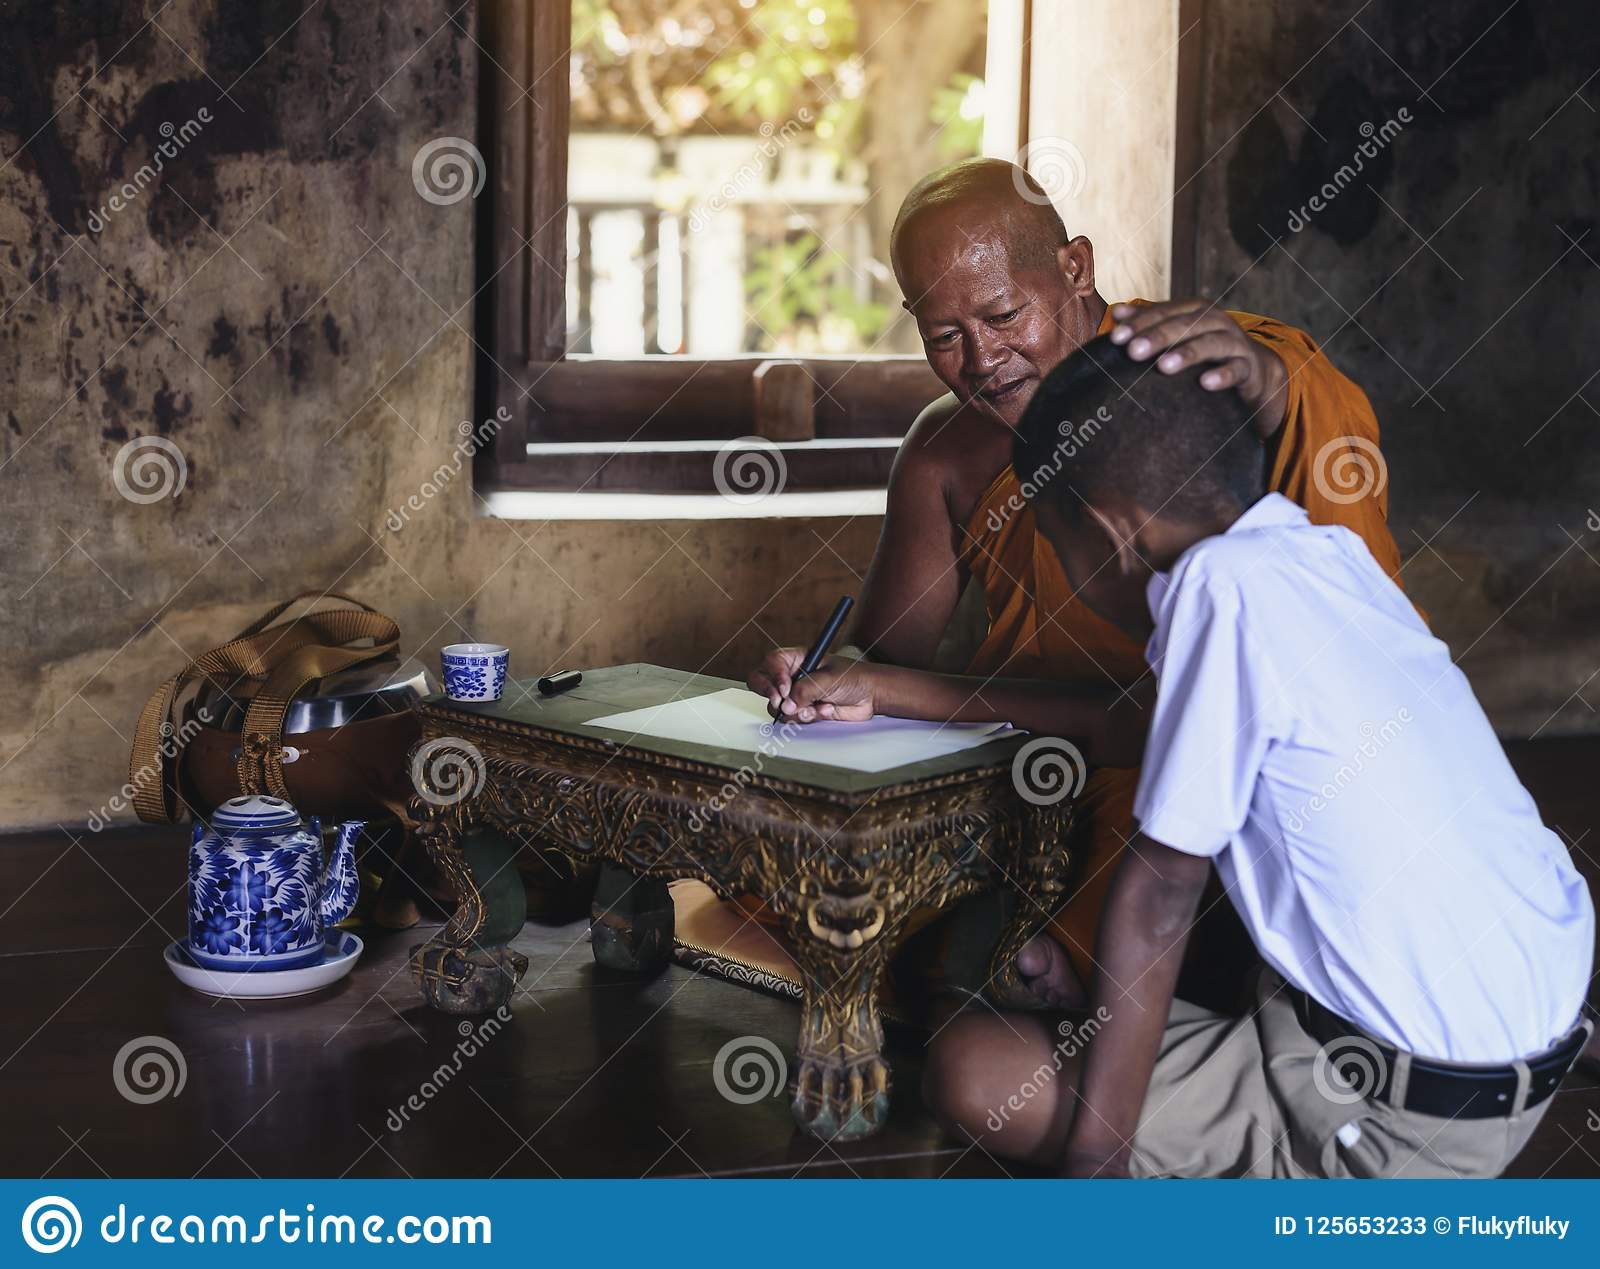 Outstanding Monk Teaching Children Books In Rural Temples Stock Image Interior Design Ideas Ghosoteloinfo